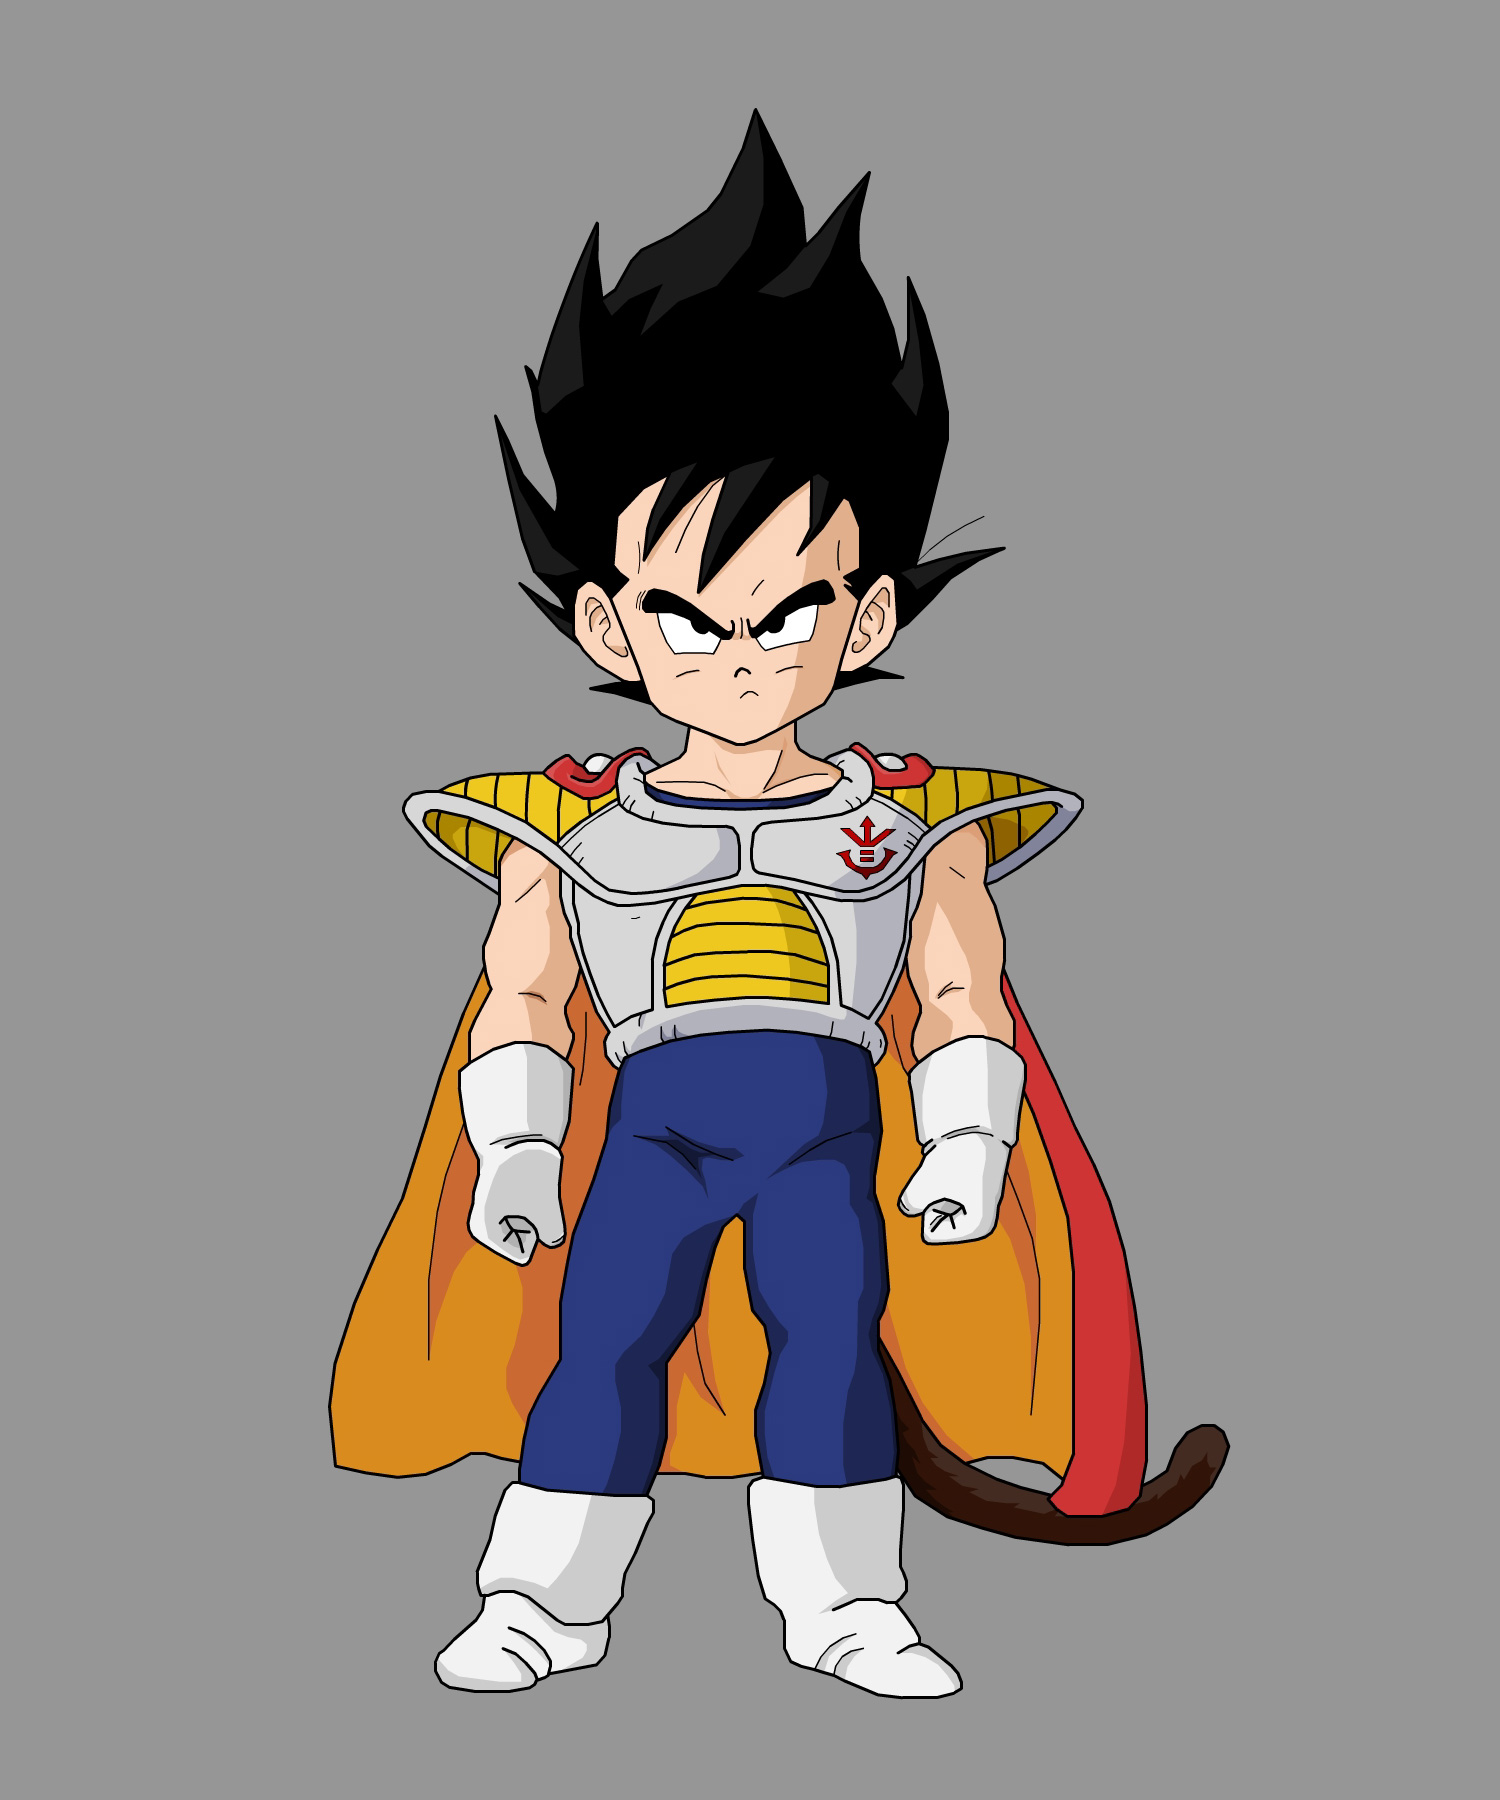 King Vegeta And Prince Vegeta Prince Vegeta in The Story